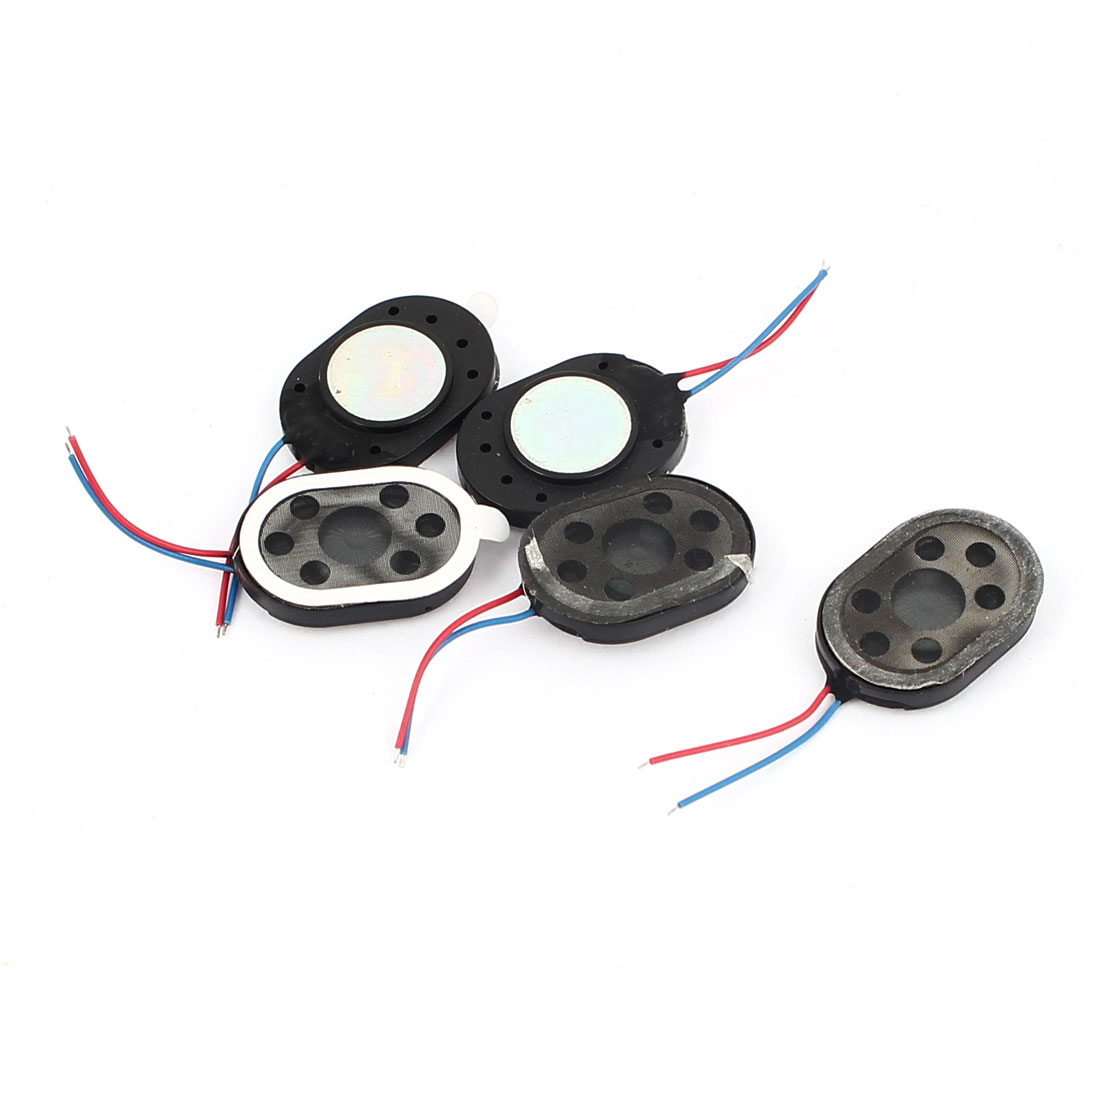 14mmx20mmx4mm 8 Ohm 1W Magnet Speakers Amplifier Horn for Computer 5 Pcs